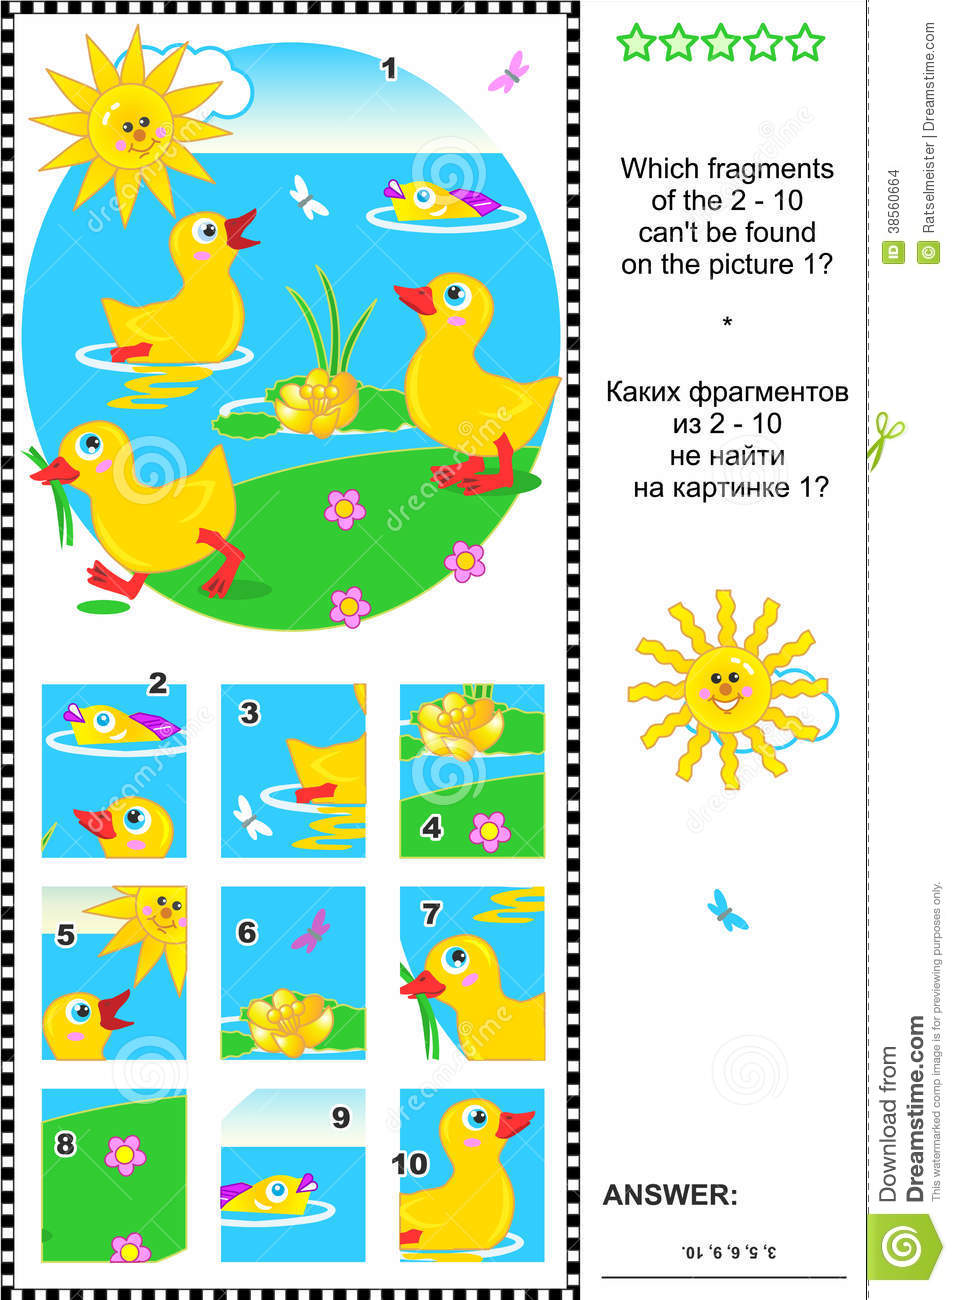 cute little ducklings visual logic puzzle what not fragments picture plus same task text russian answer 38560664 - Kindergarten Duck Riddle